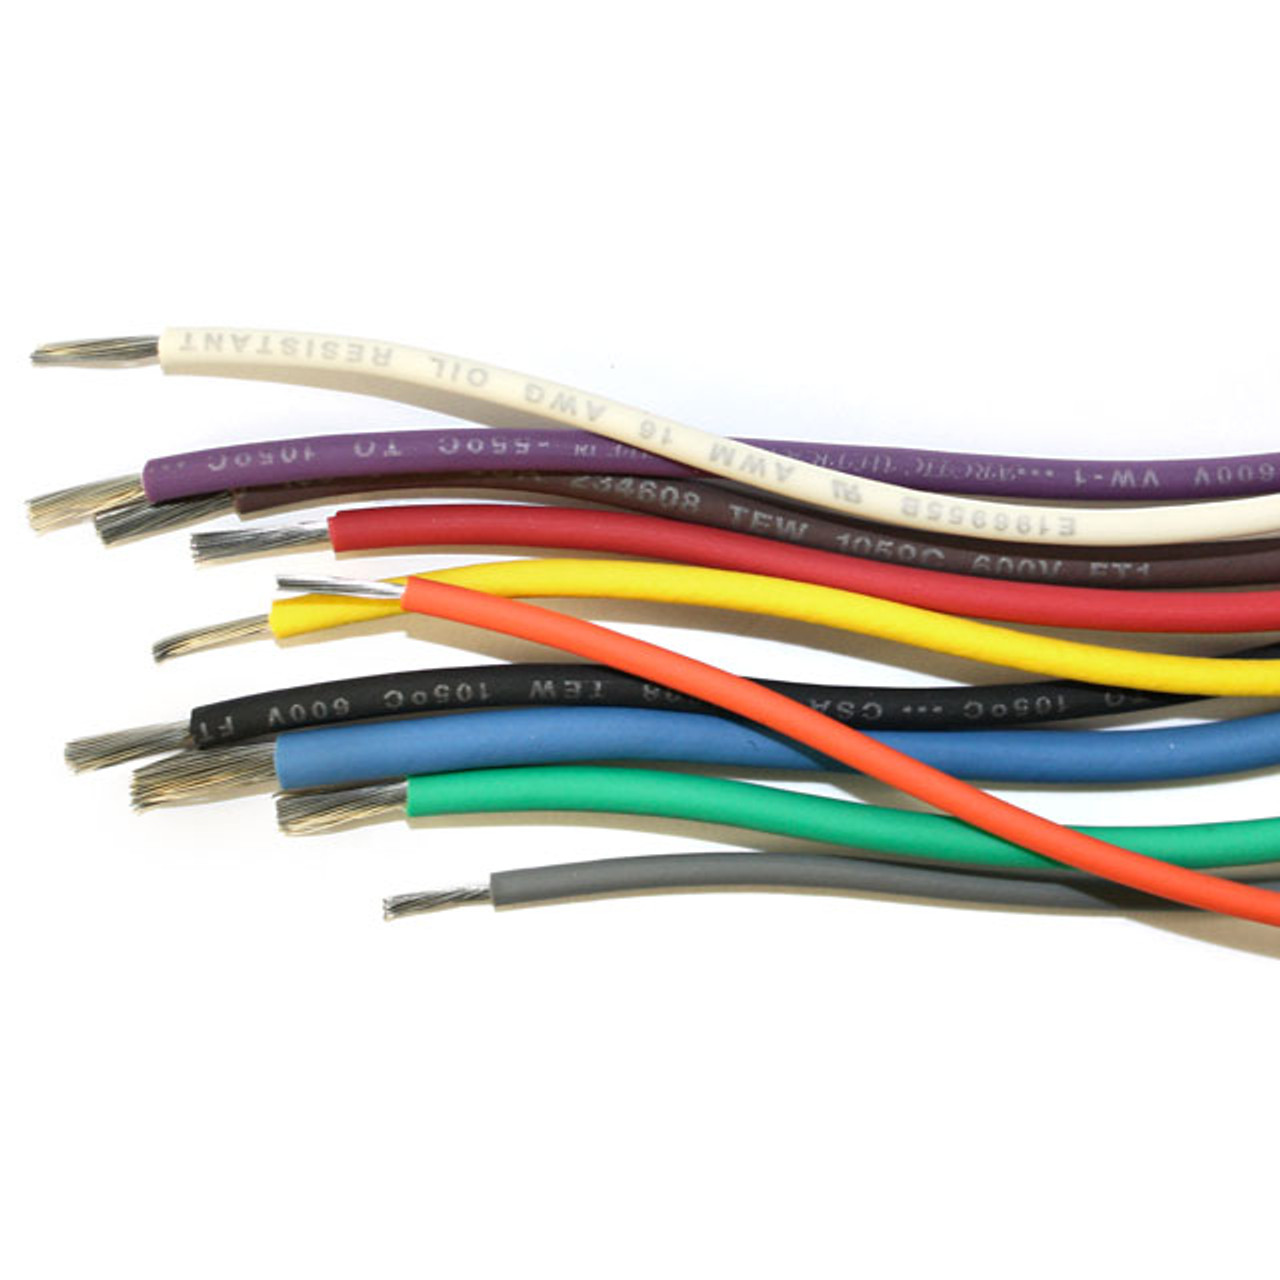 Polar Wire Arctic Ultraflex Blue 10-18 AWG single conductor tinned fine strand wire features a tough, abrasion resistant jacket and is ultra flexible in temperatures to -55°C